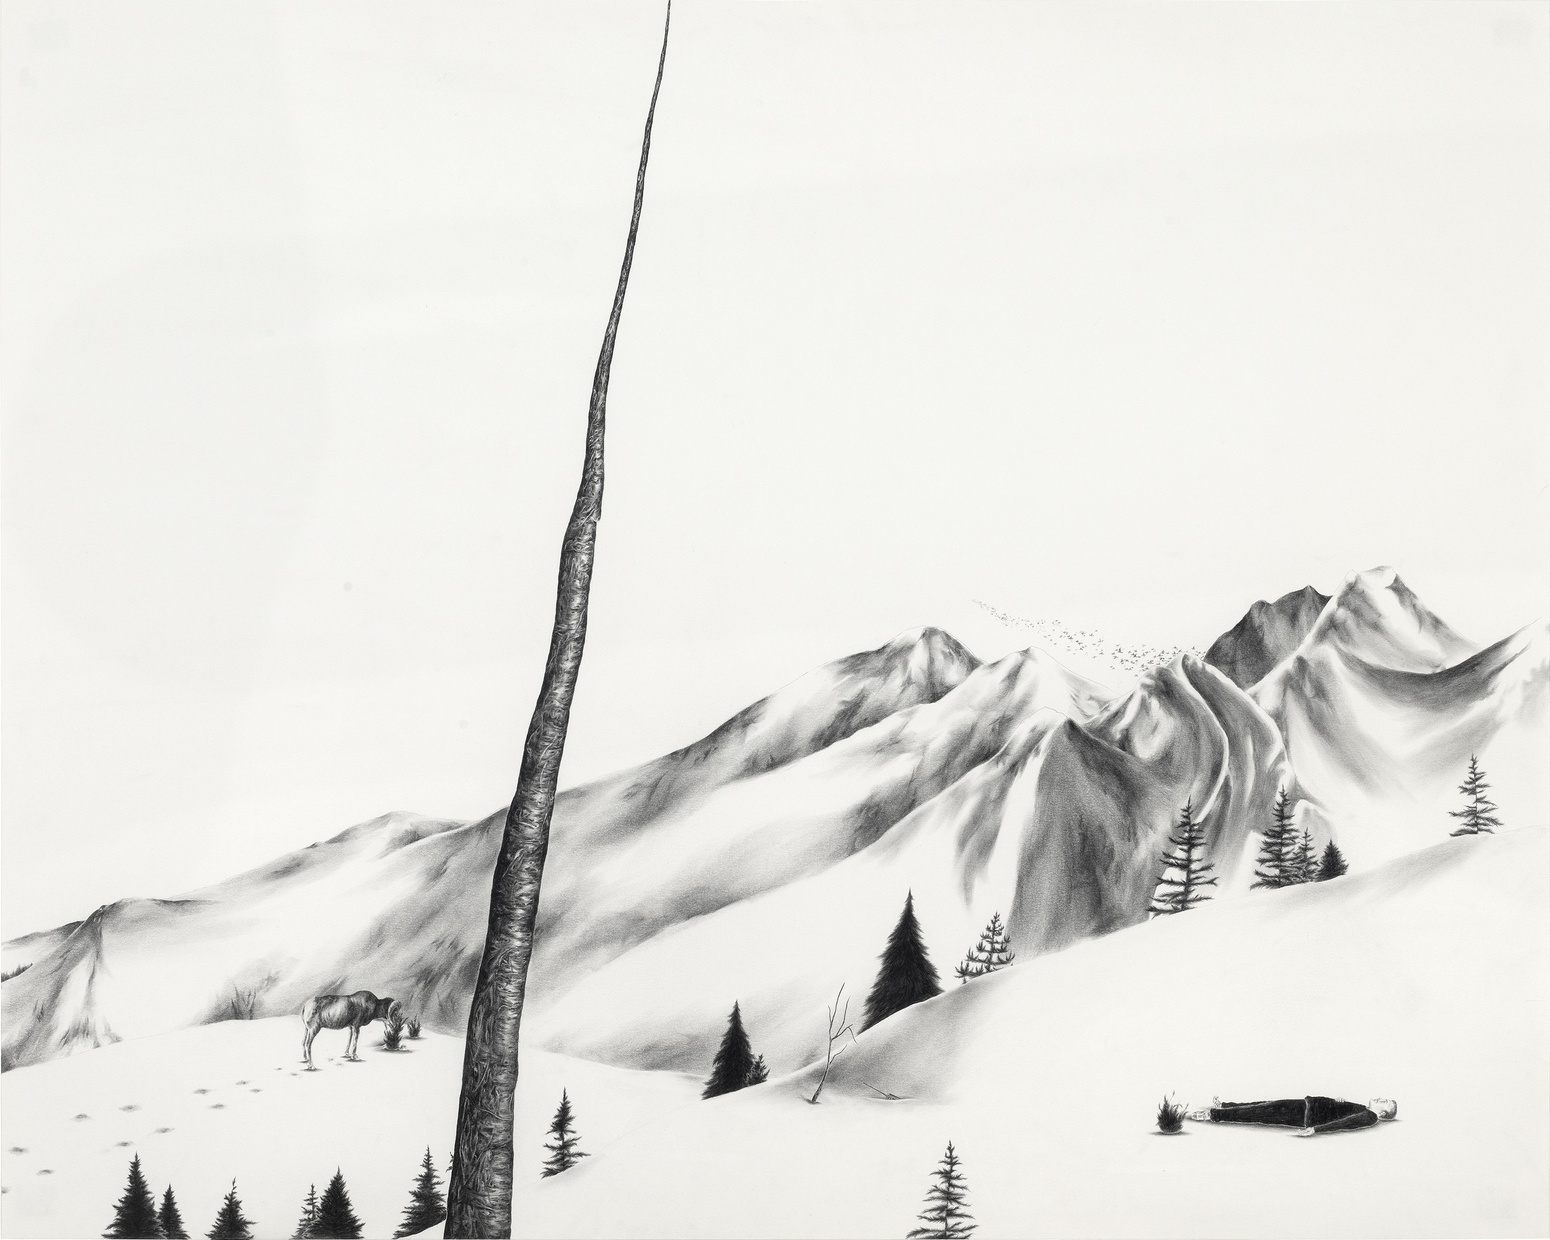 A black and white drawing of a tall, bare tree stretching upward in front of a snowy mountainscape with a goat eating and a man laying in the snow in the background.